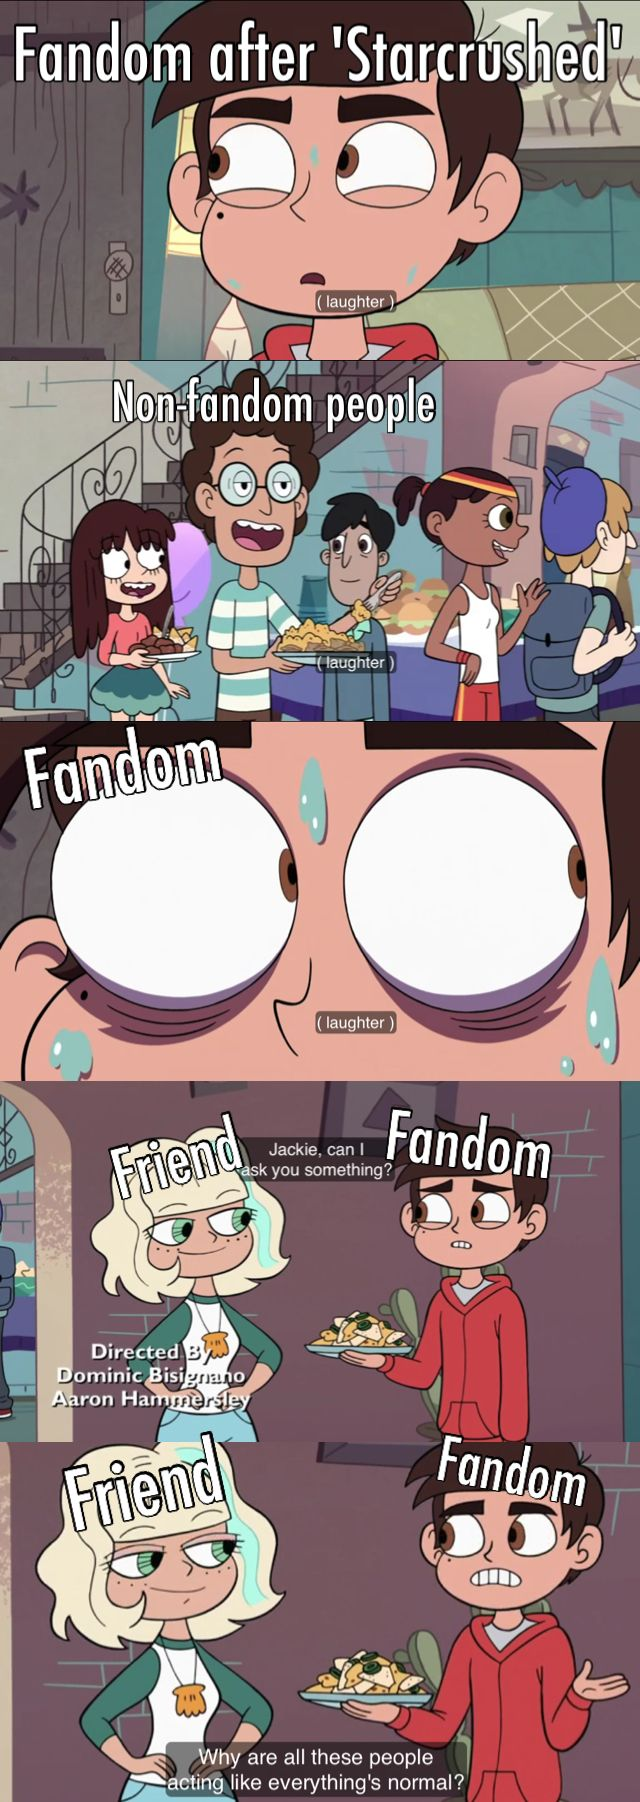 Why are all these people acting like everything's normal?  Star vs the Forces of Evil